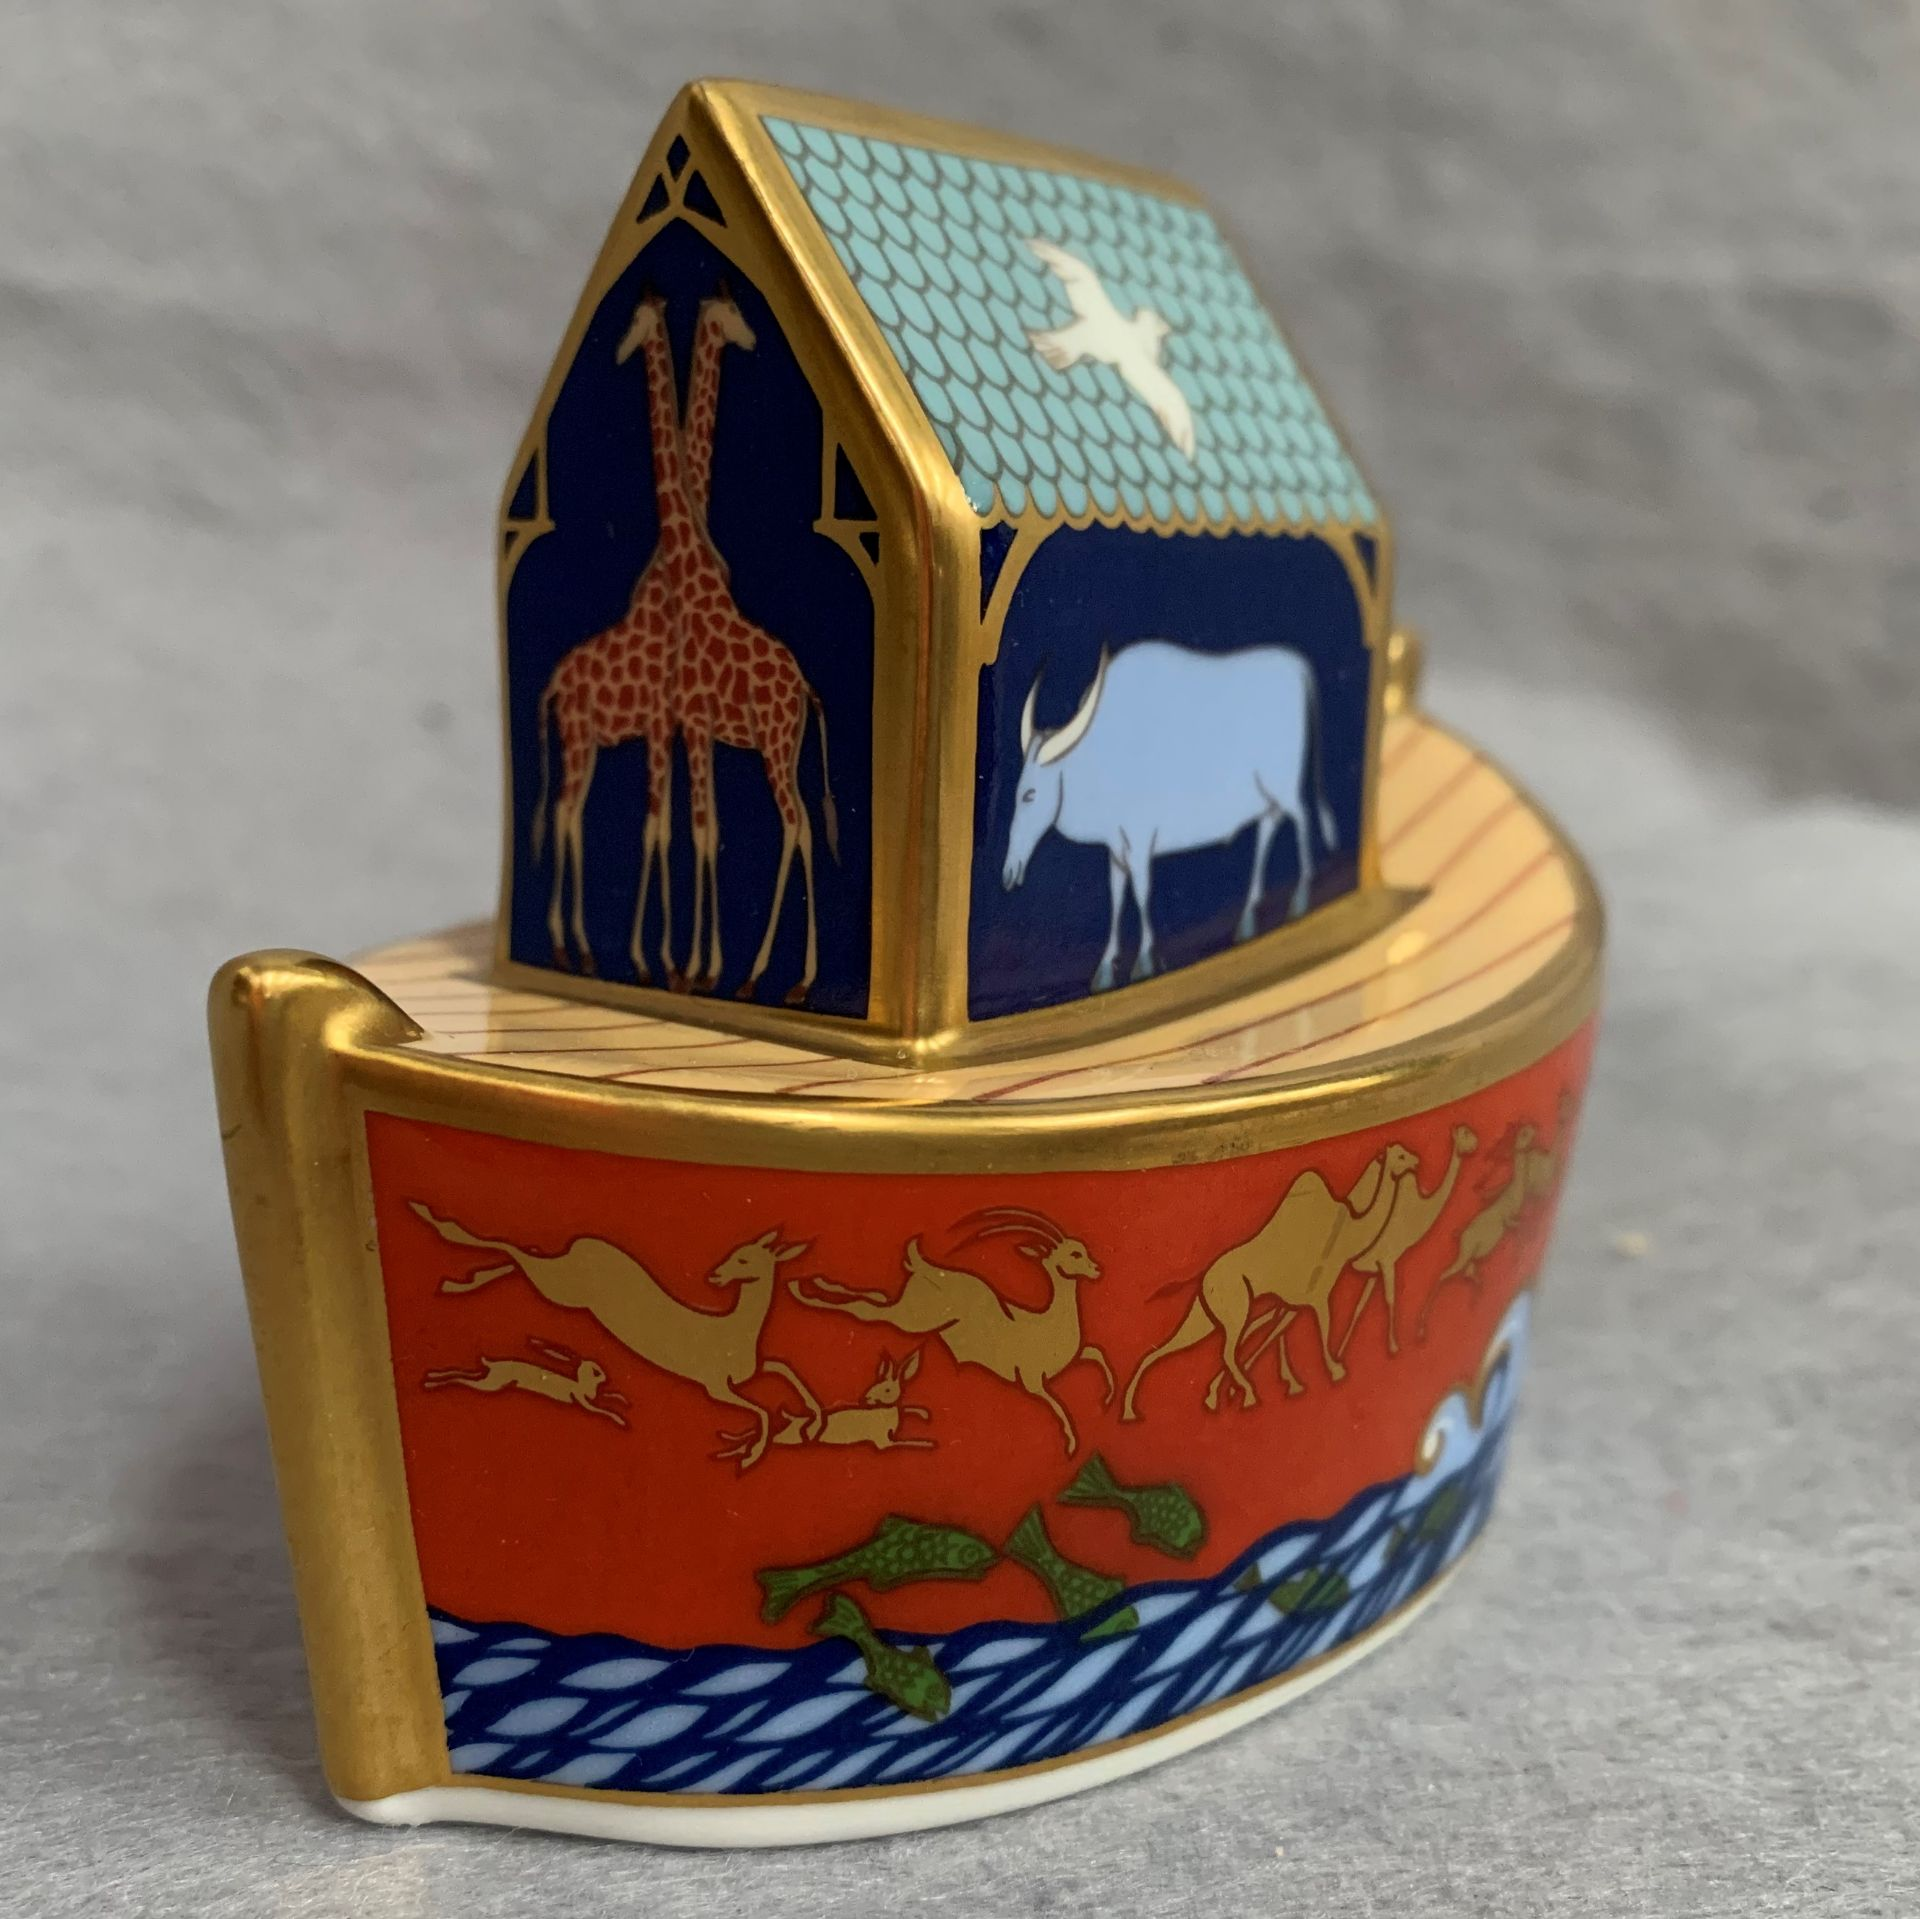 Lot 23 - Royal Crown Derby paperweight modelled as Noah/s Ark,